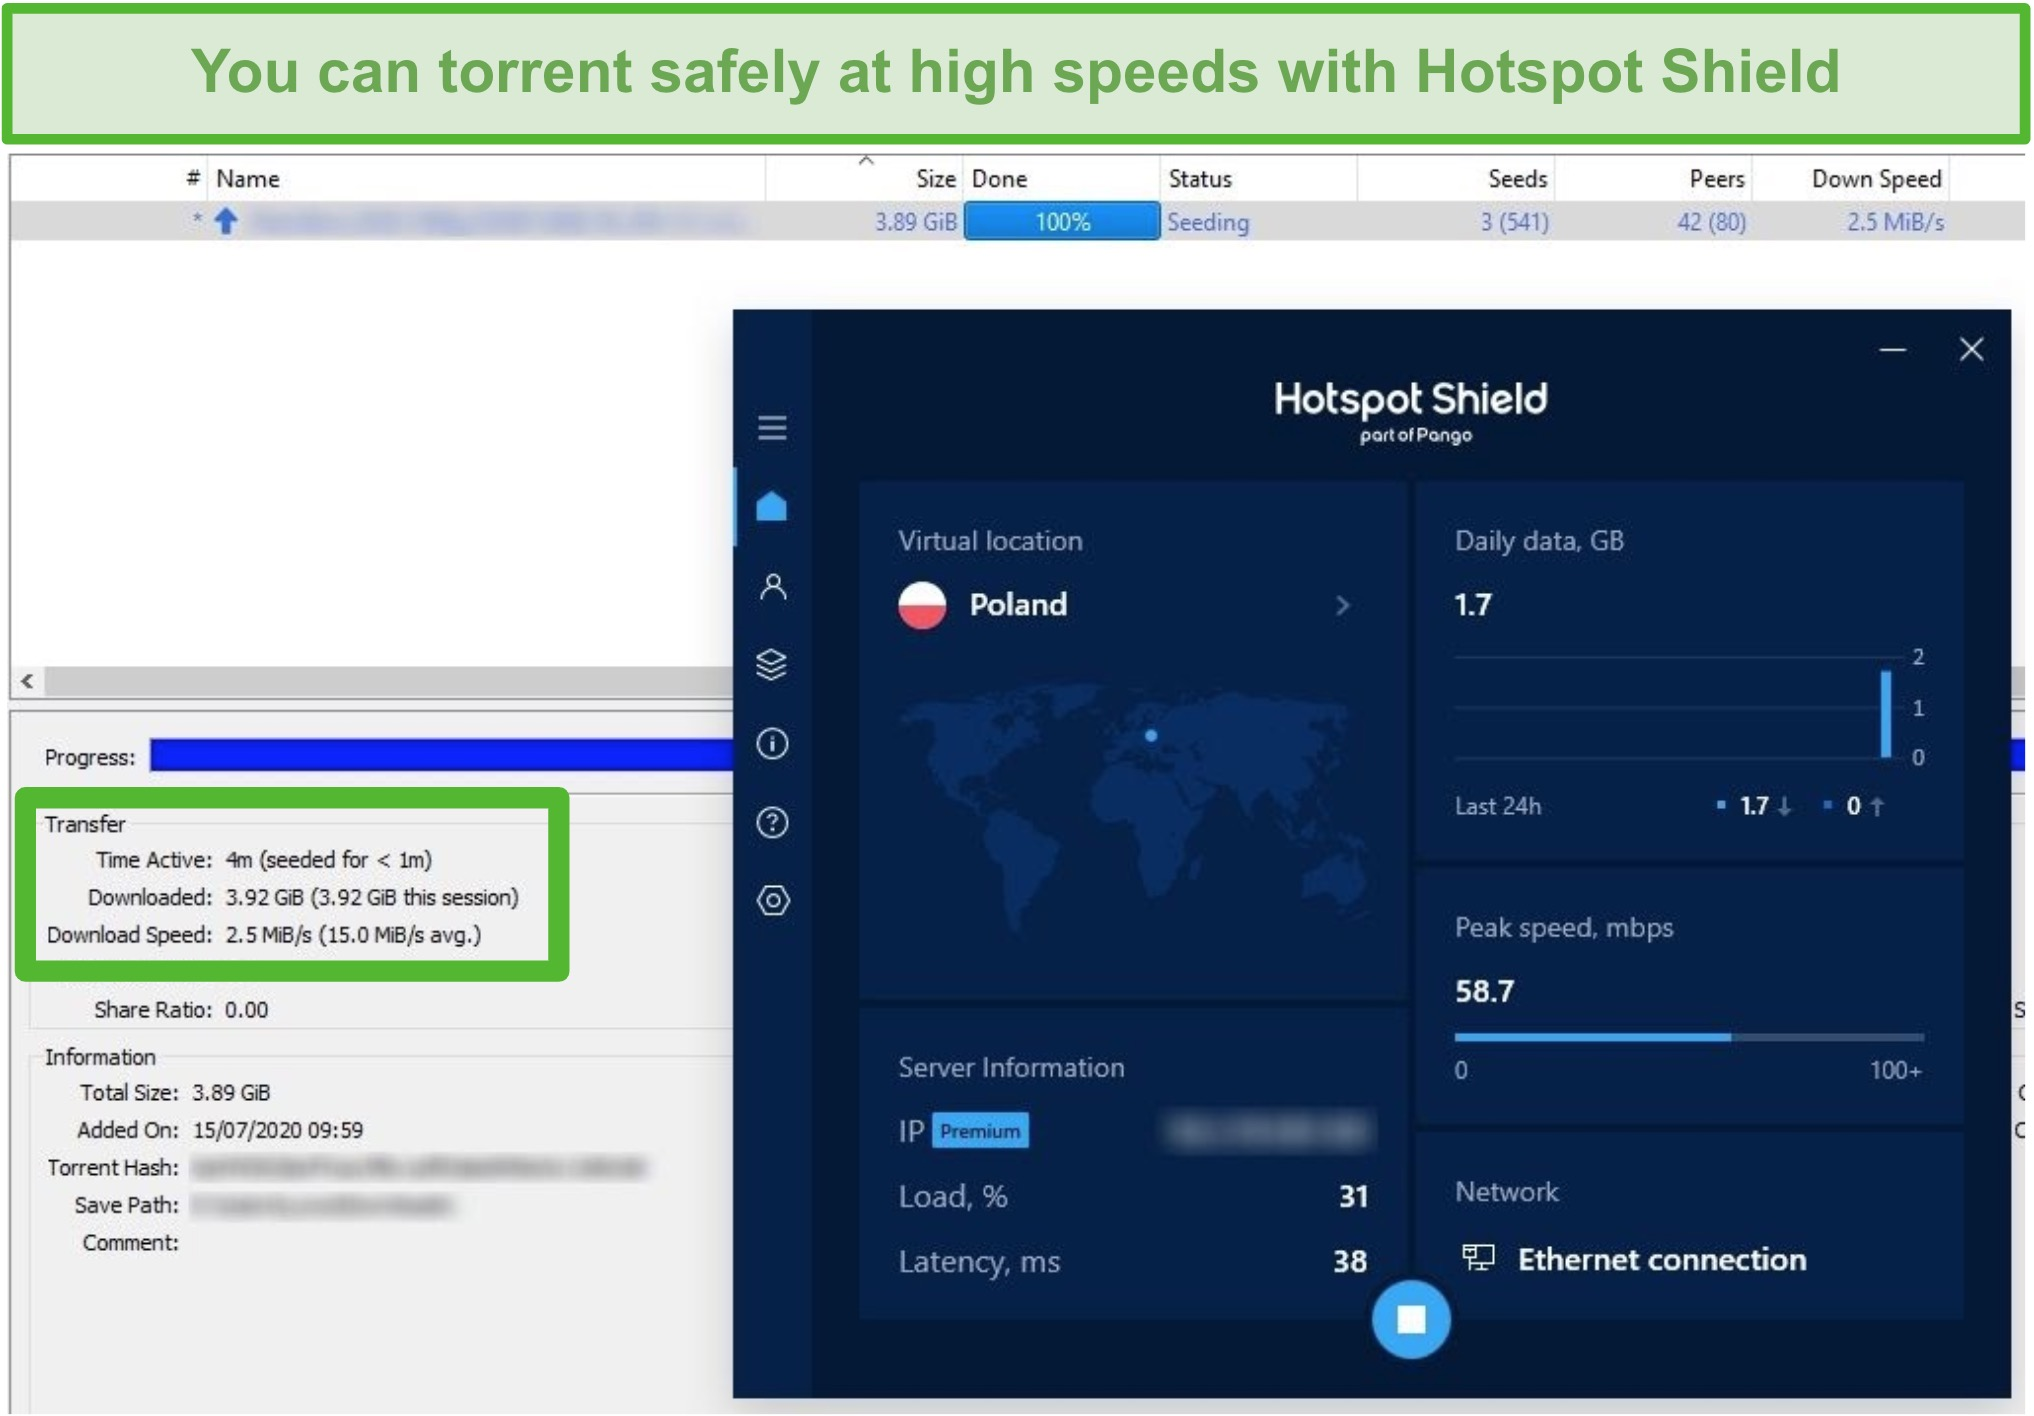 Screenshot of being connected to Hotspot Shield while torrenting a 4GB file in under 4 minutes.